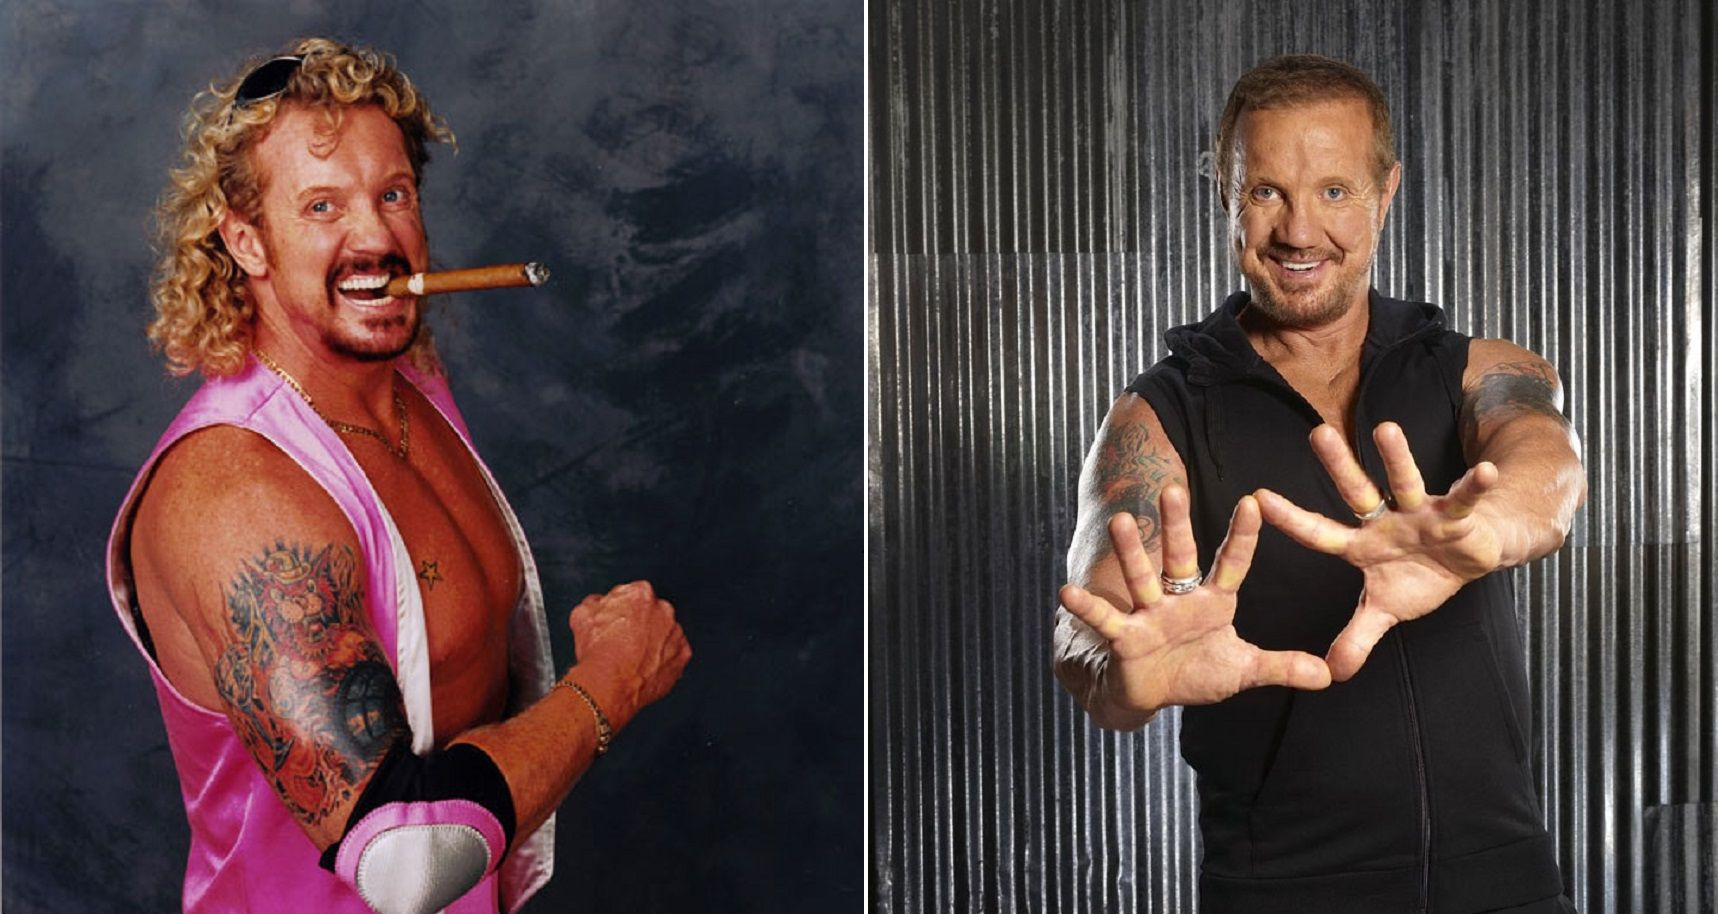 Top 15 Unsung Star Wrestlers Of The 90s: Where Are They Now?